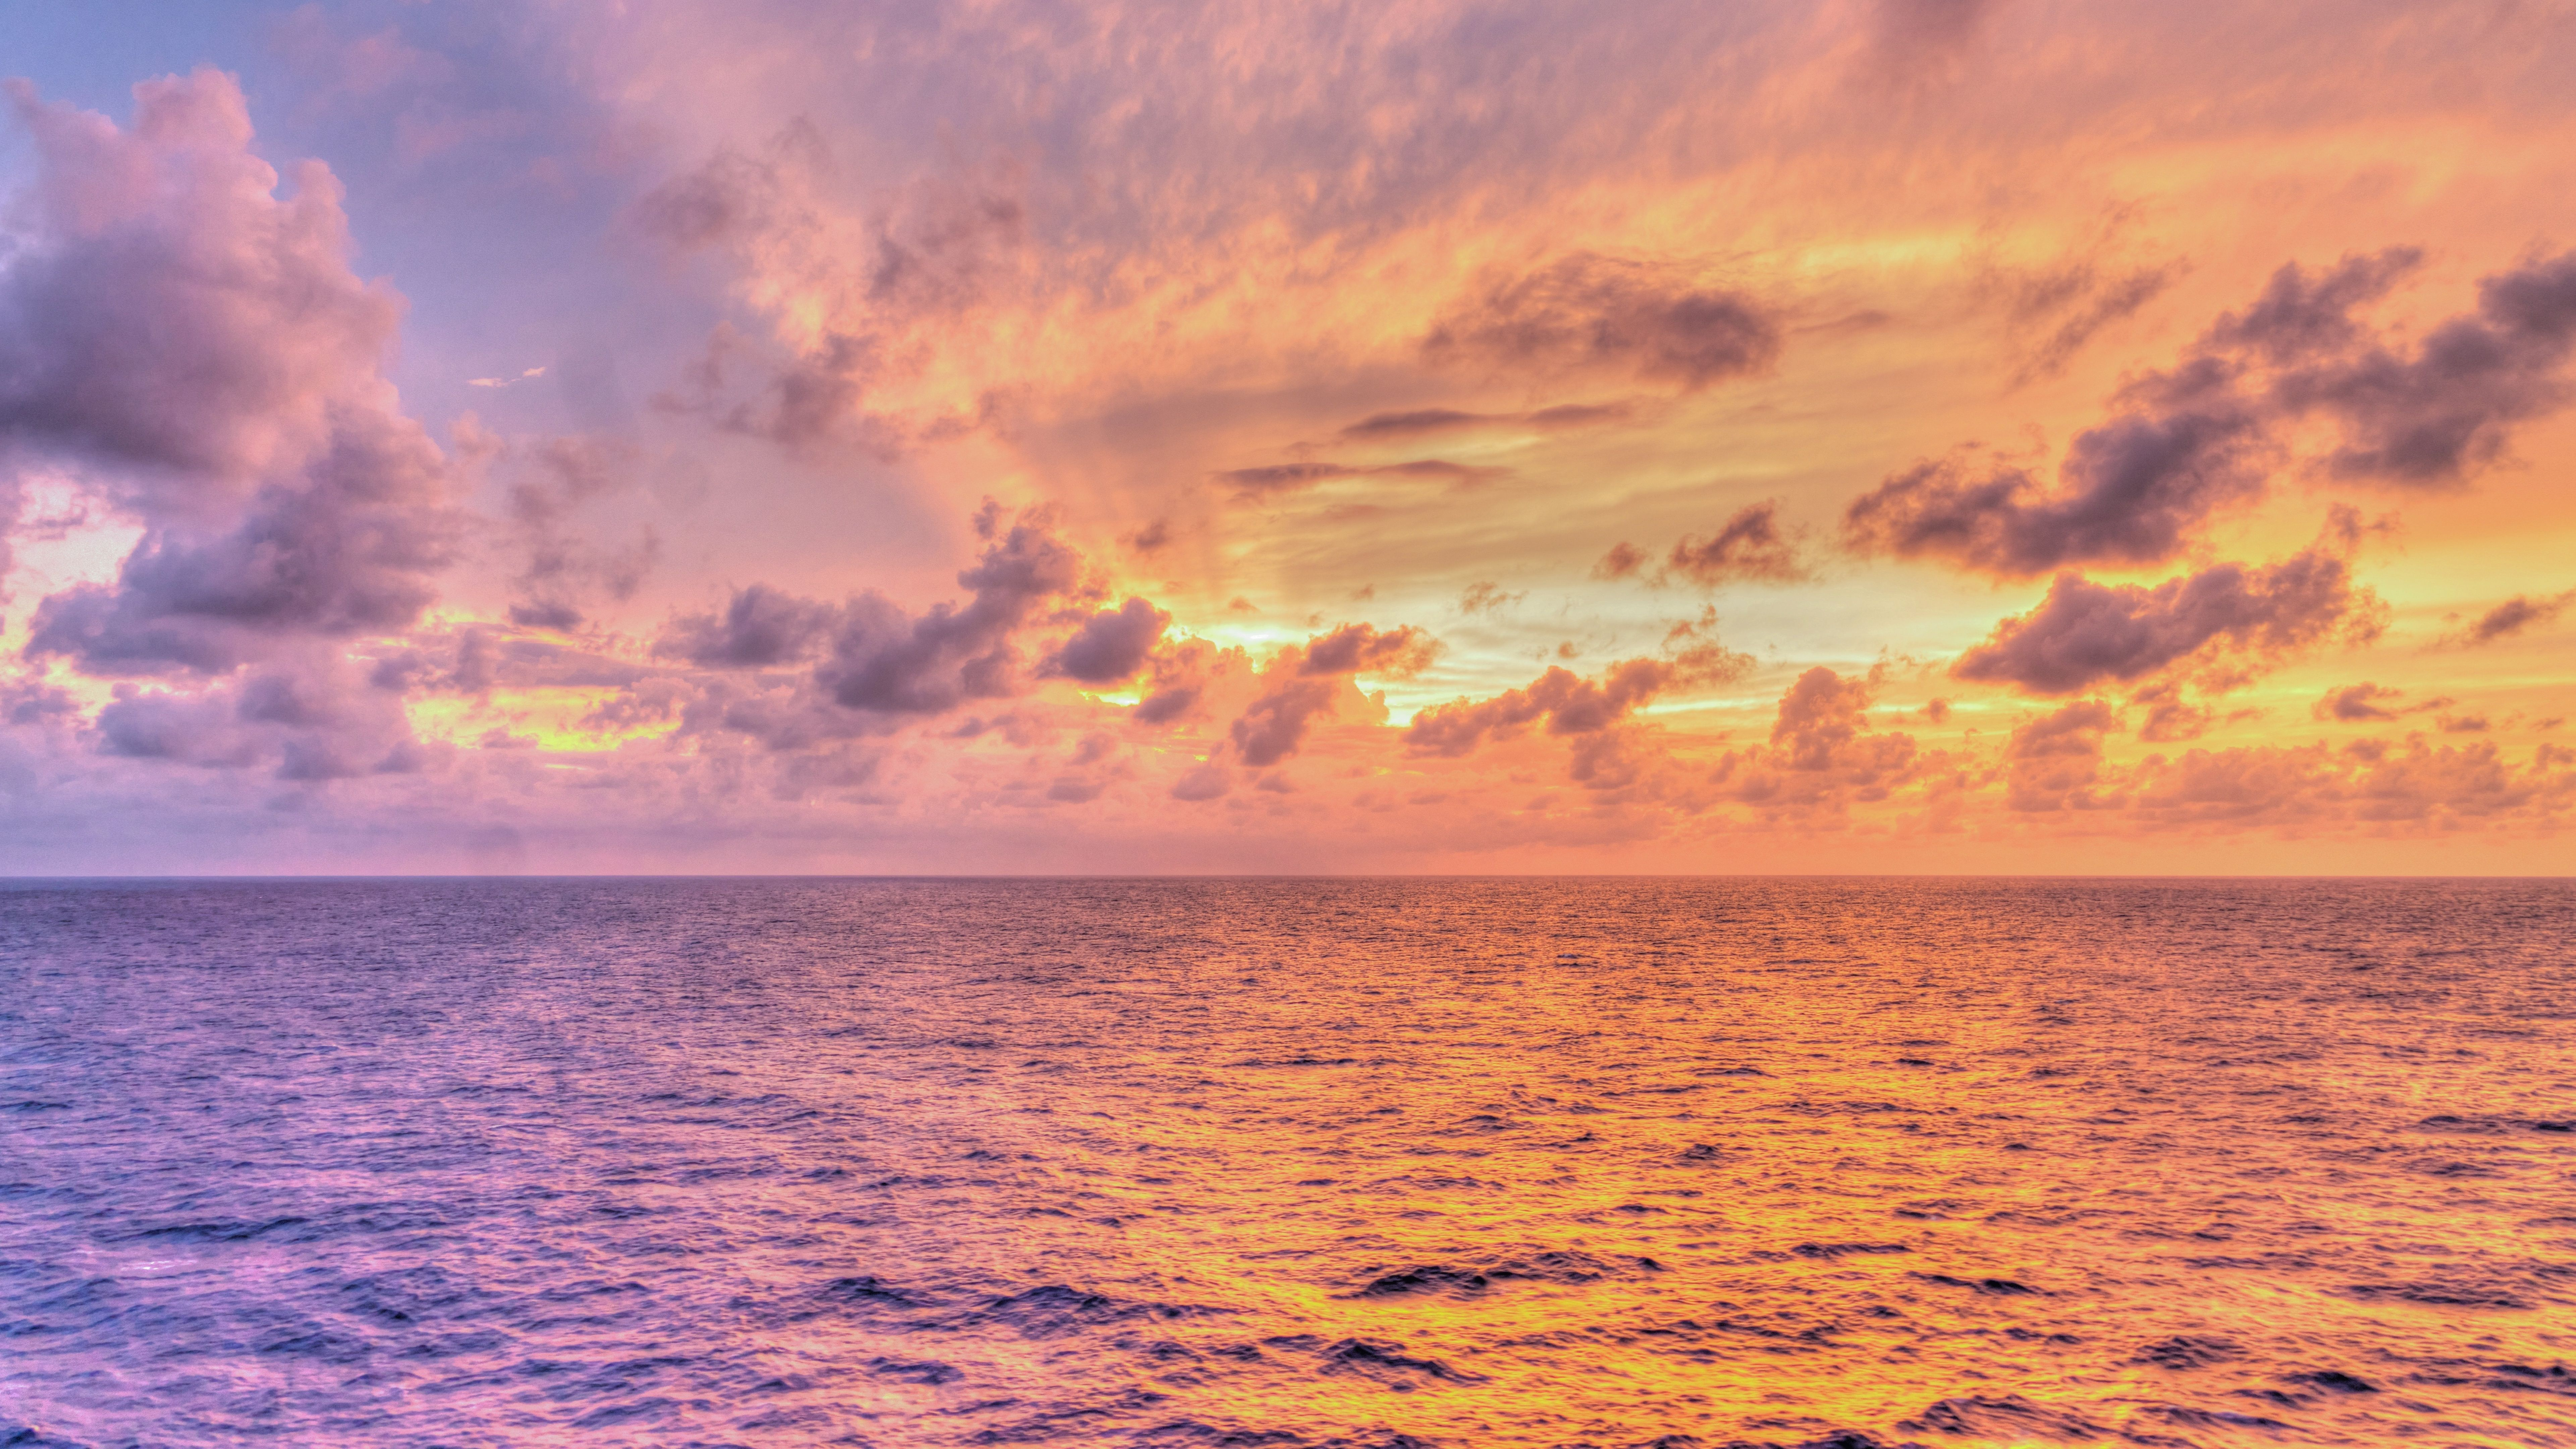 7680x4320 7680x4320 Sunset Reflections In Water 8k 8k HD 4k Wallpapers ...